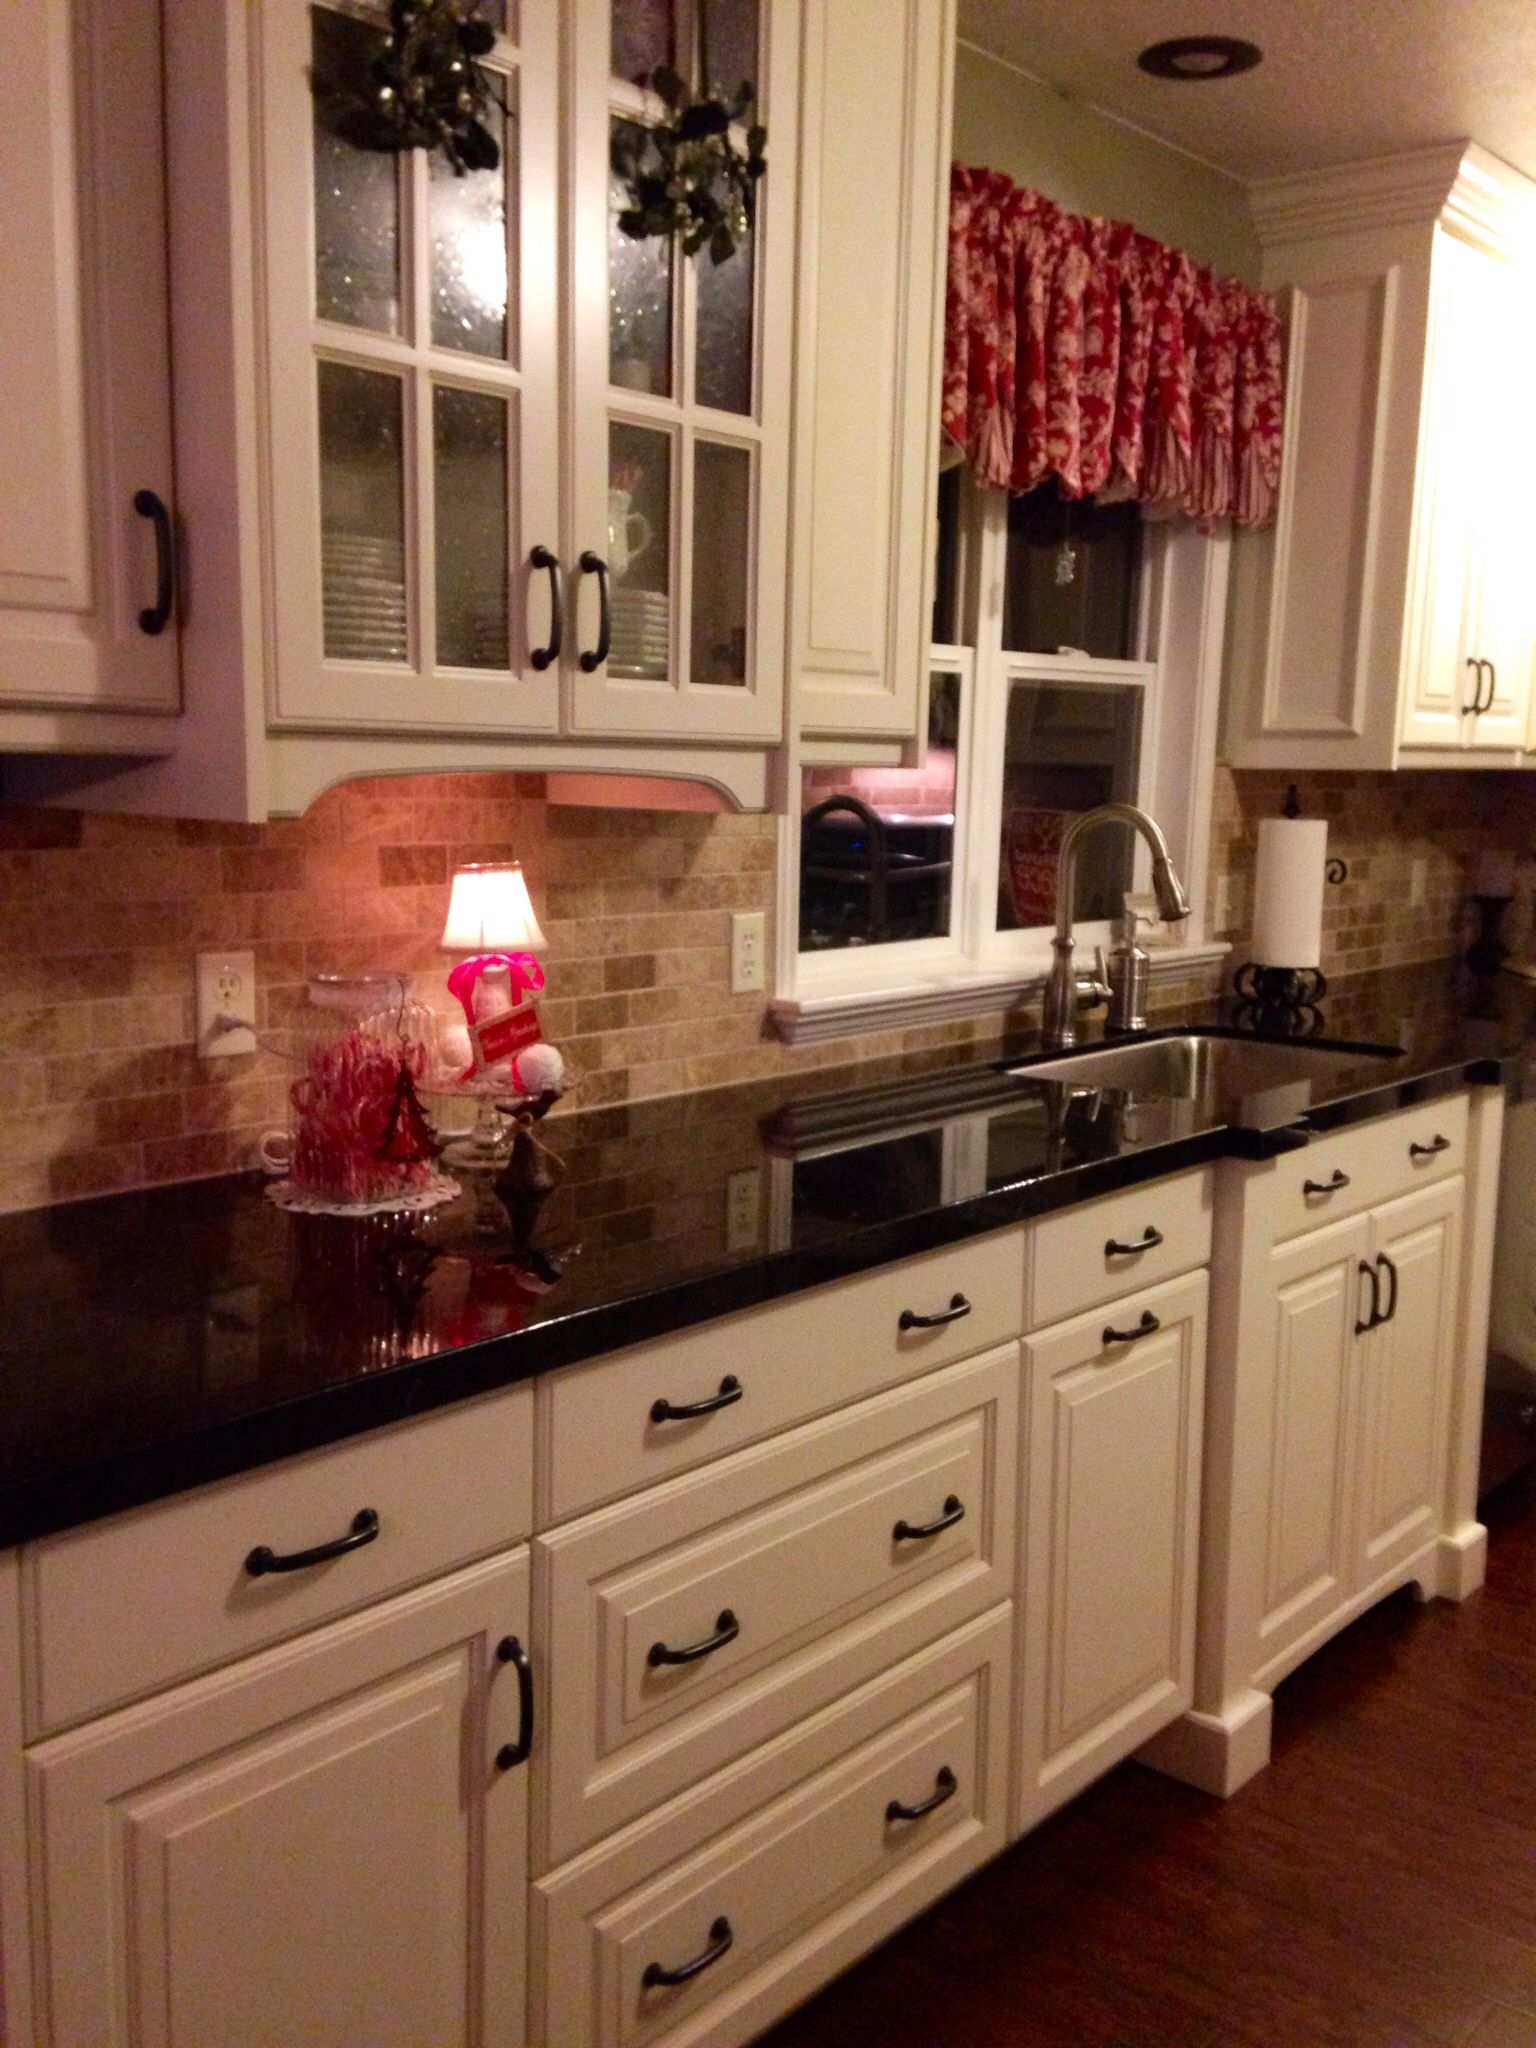 Kitchens With Dark Cabinets And White Countertops